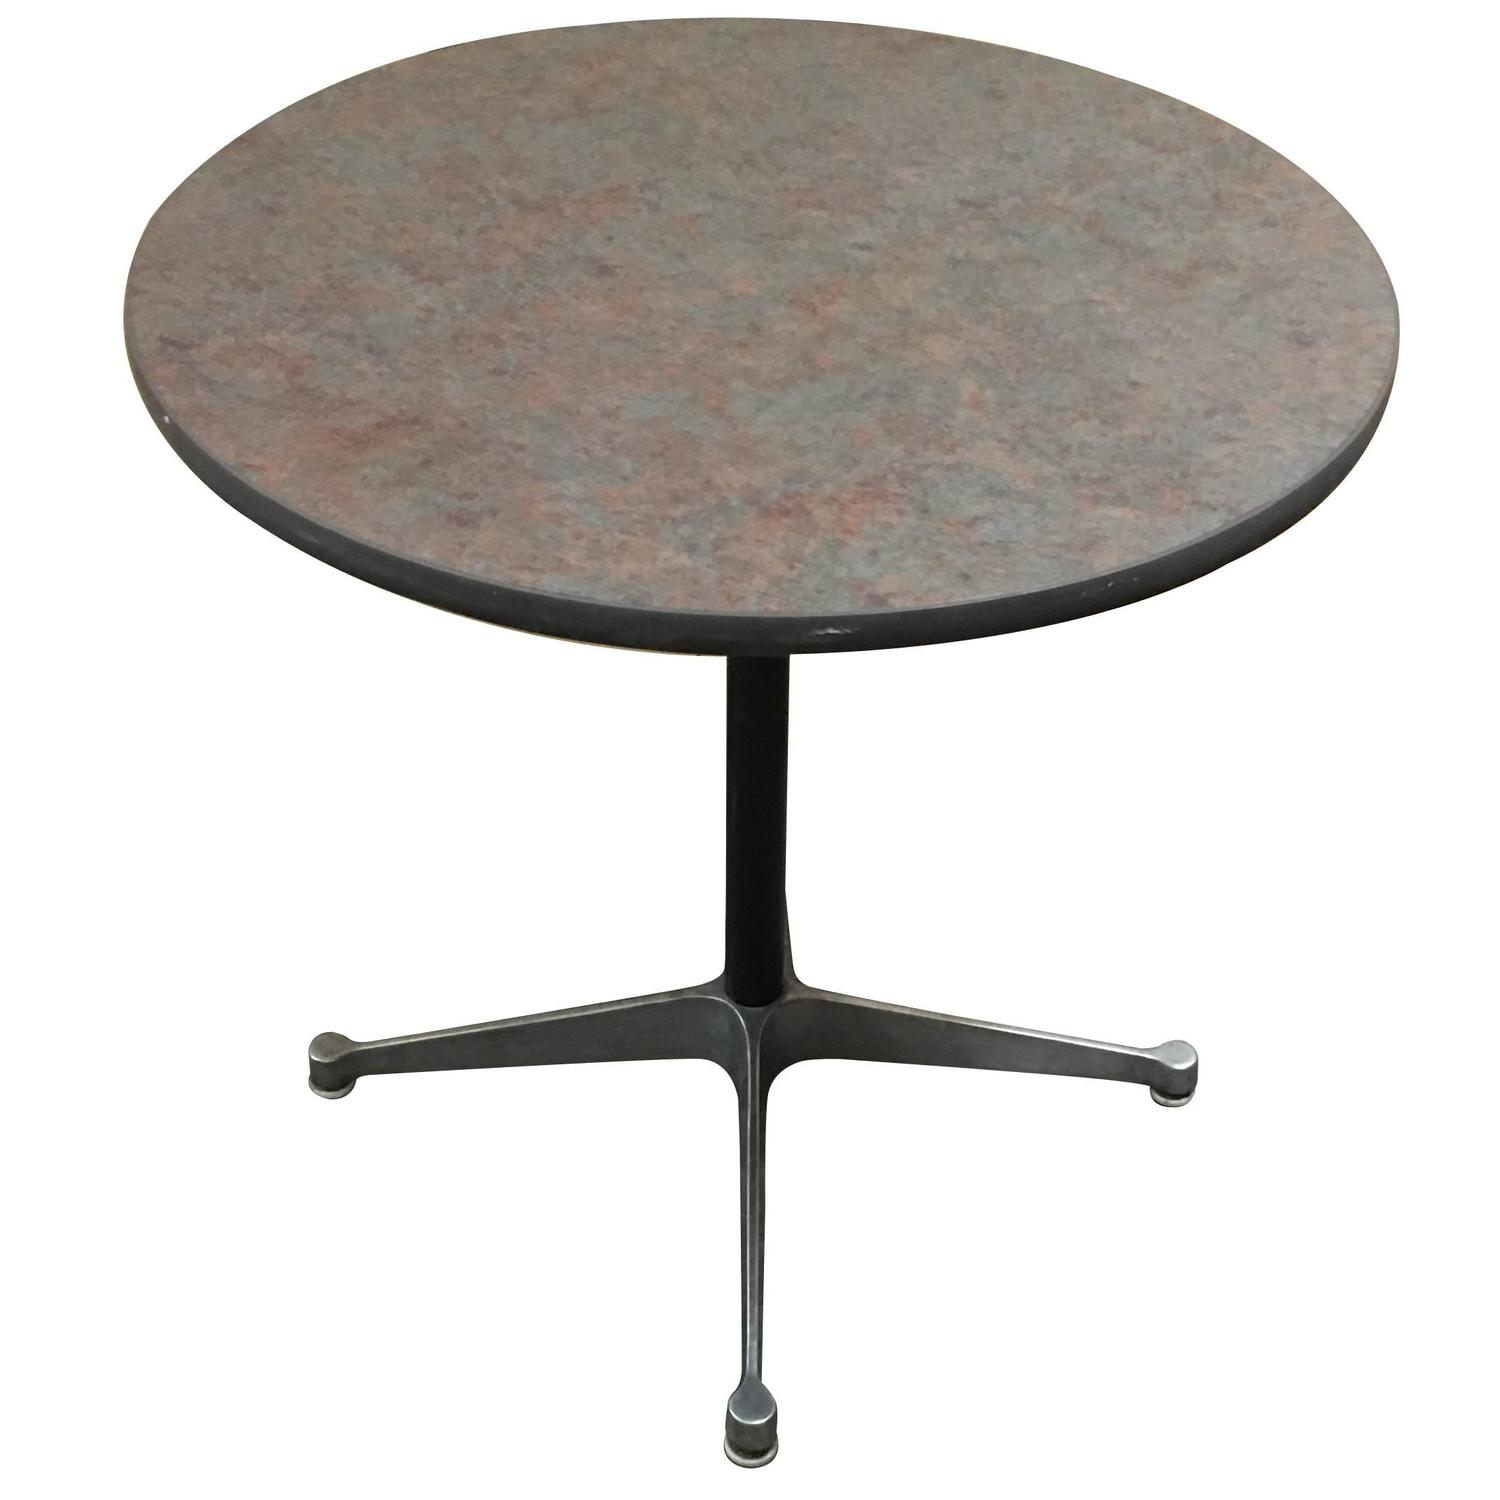 Rare size herman miller eames dining table for sale at 1stdibs - Eames table herman miller ...